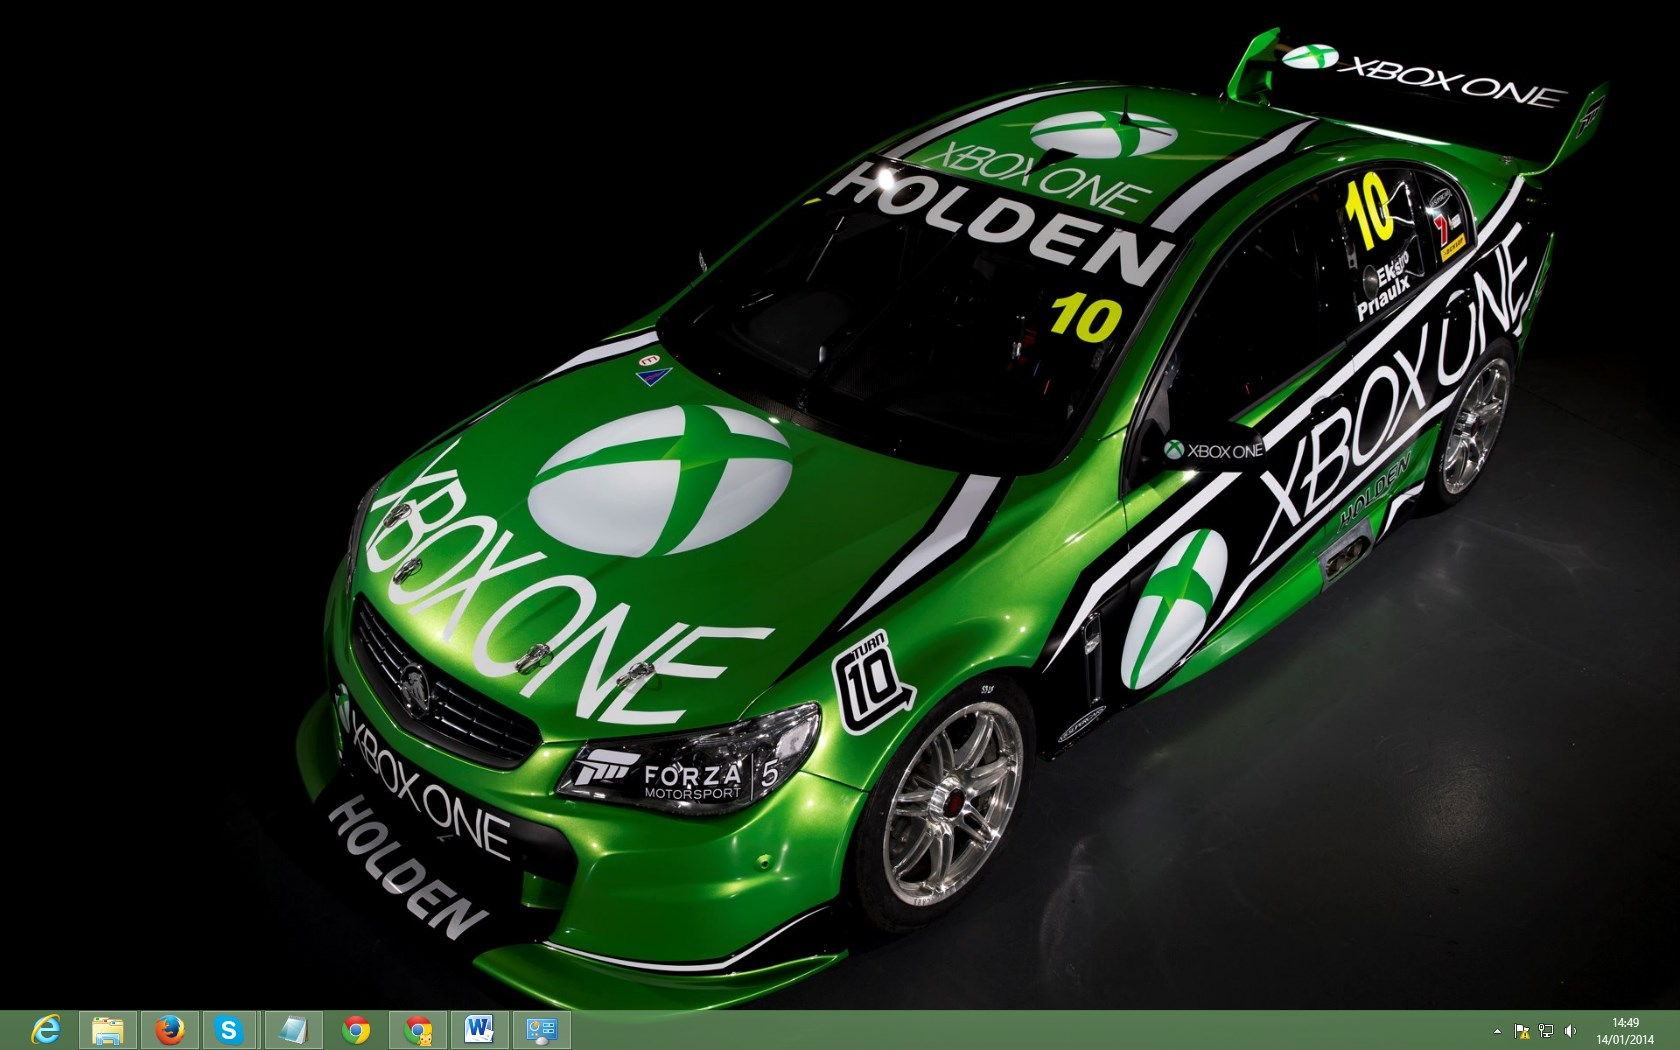 Forza 7 Car Wallpaper Tema Equipe De Corrida Do Xbox One Download